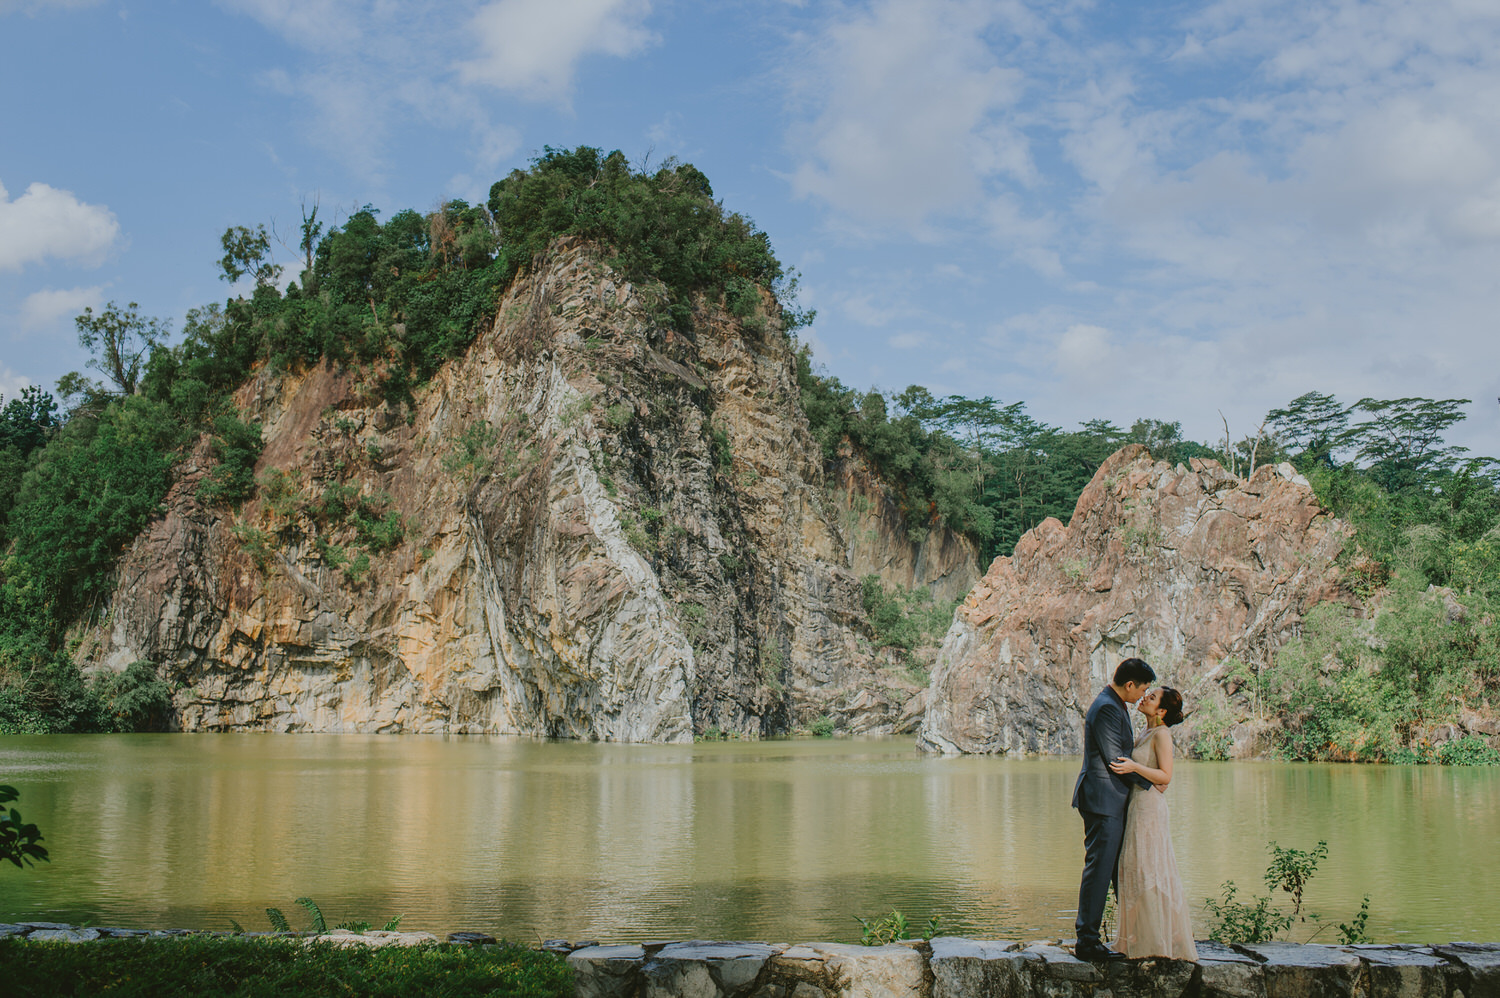 singapore prewedding destination - singapore wedding - diktatphotography - kadek artayasa - nikole + ardika - 17